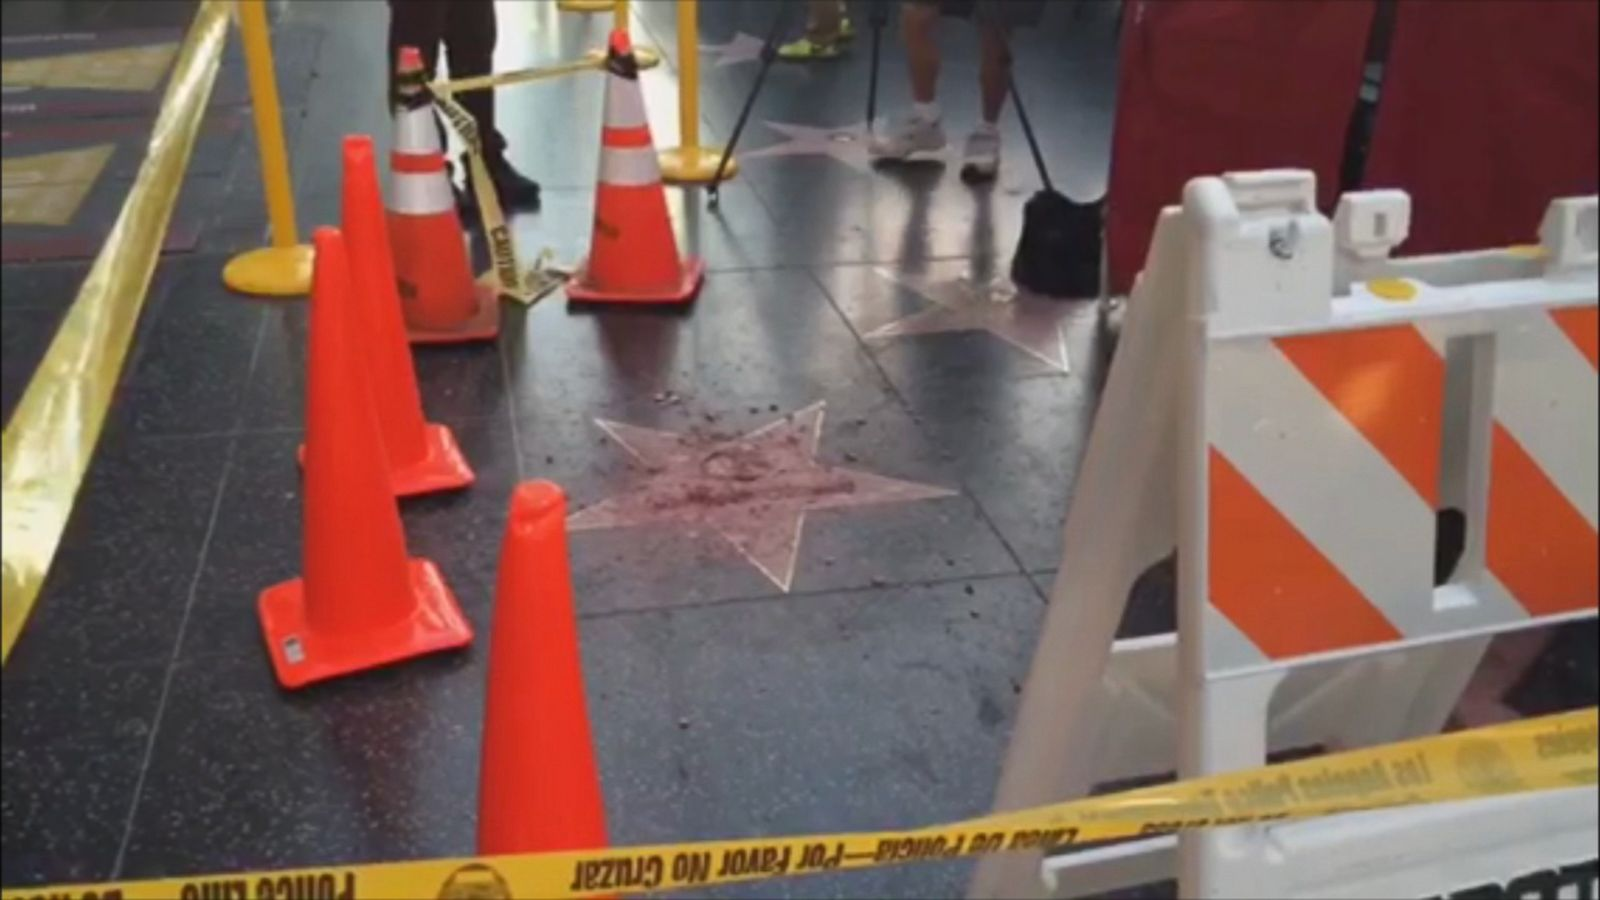 Los Angeles police are investigating the vandalizing of Donald Trump's star on the Hollywood Walk of Fame.